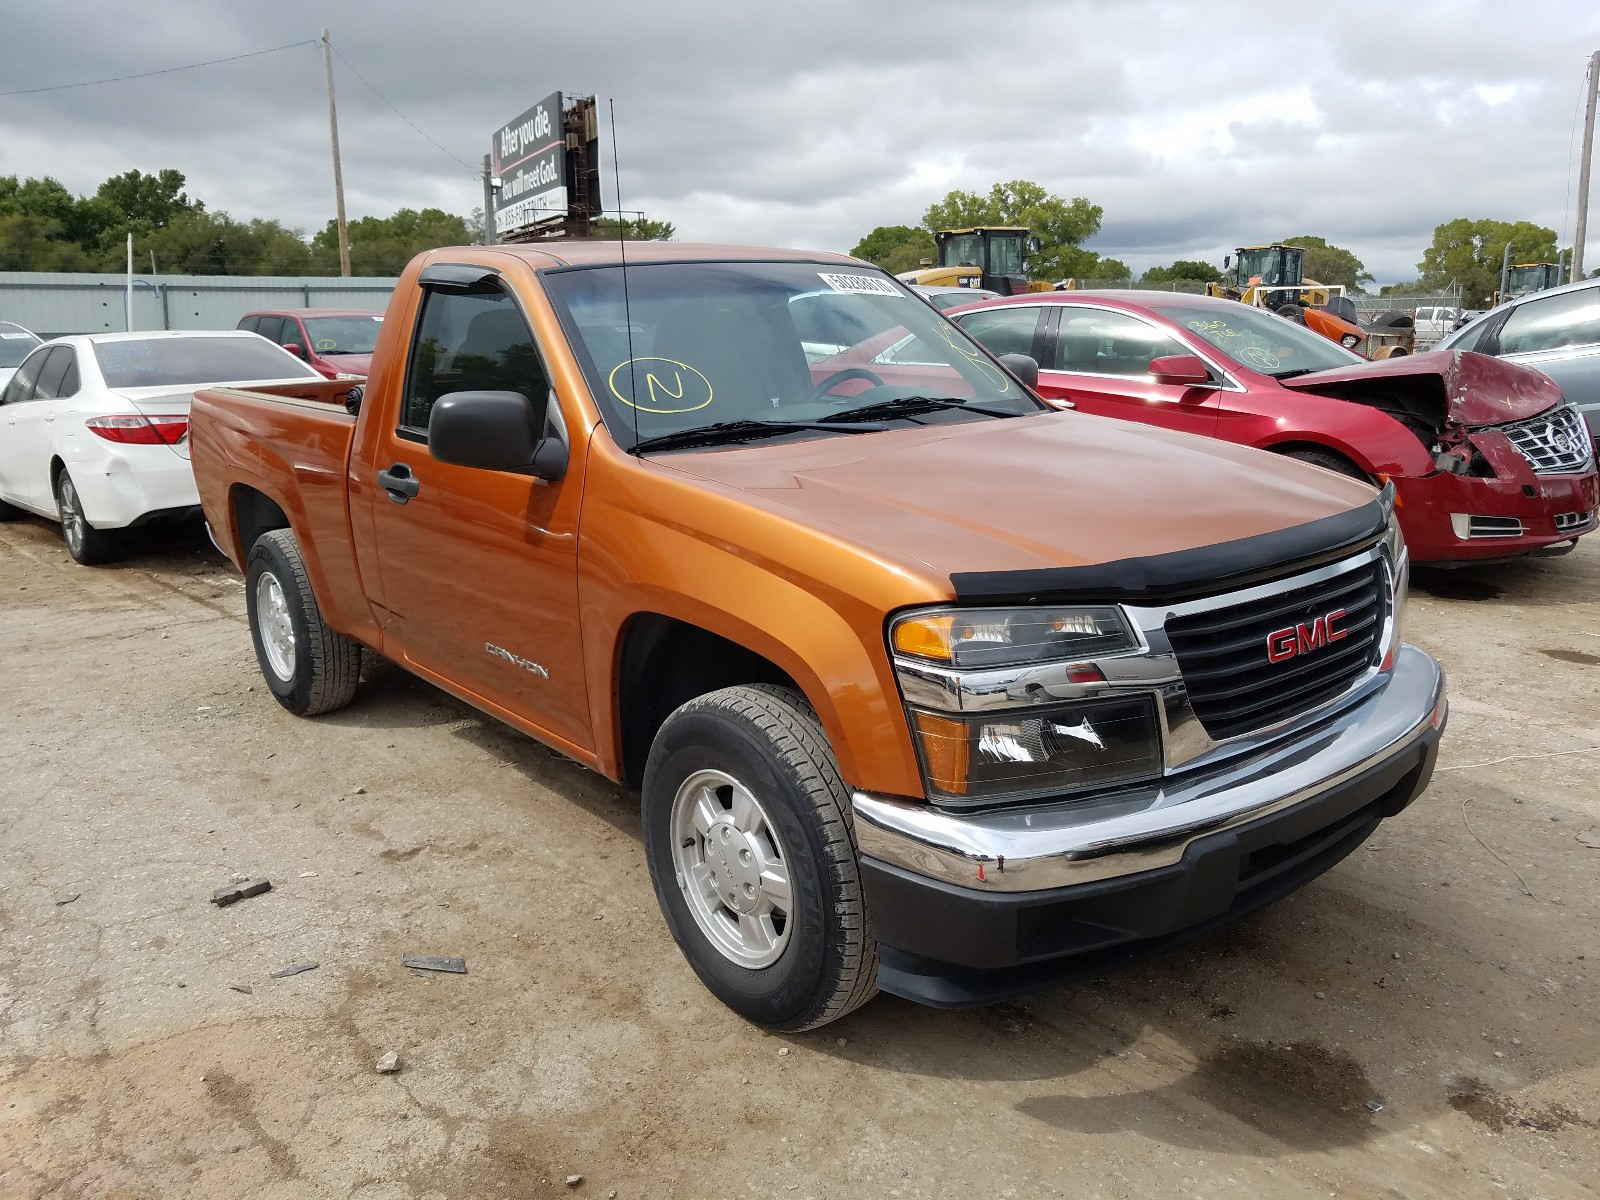 2005 gmc canyon for sale at copart wichita ks lot 50288610 salvagereseller com salvagereseller com